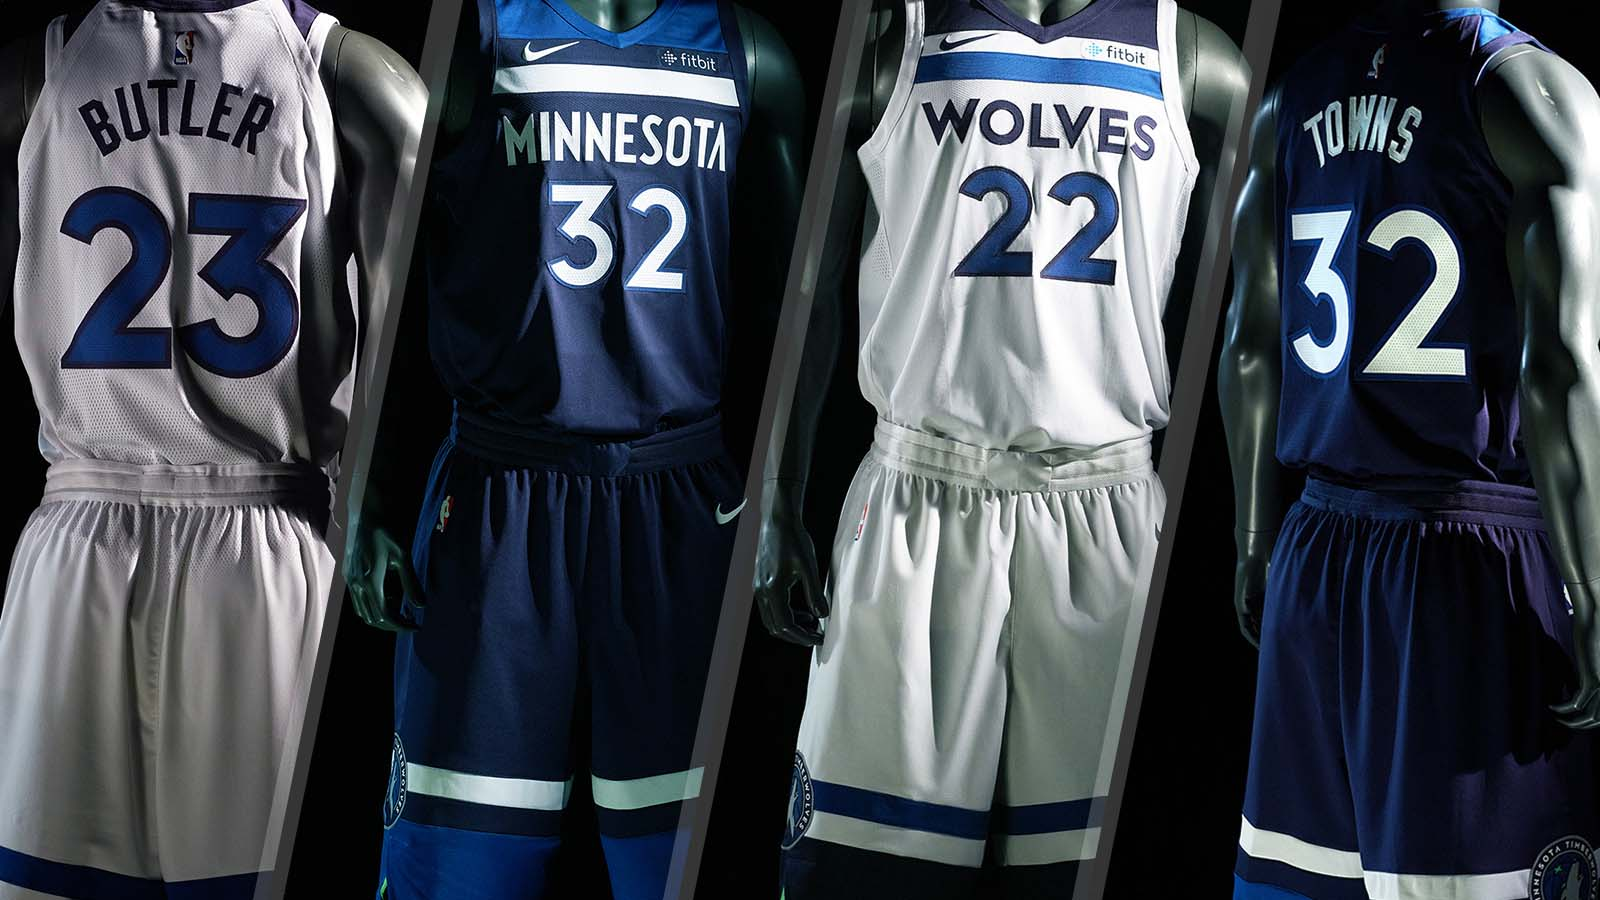 6f7002a5cb4 An in-depth look at the new Timberwolves jerseys